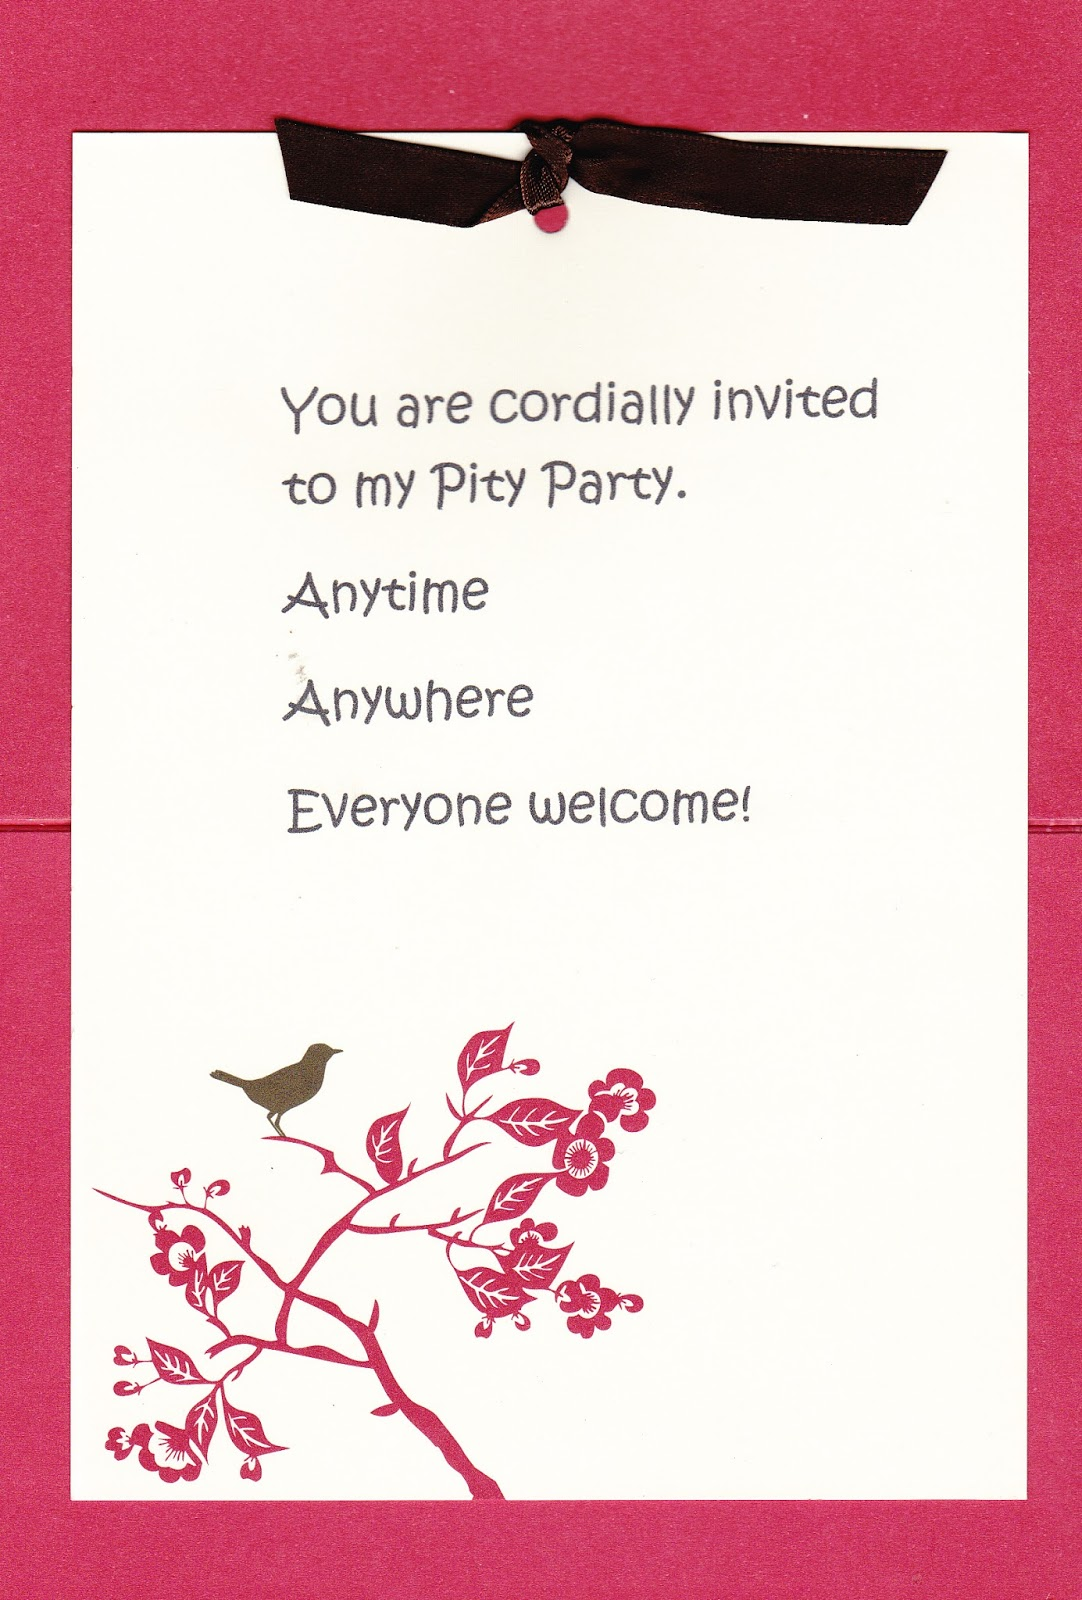 This Is A Story About You Are Cordially Invited To My Pity Party